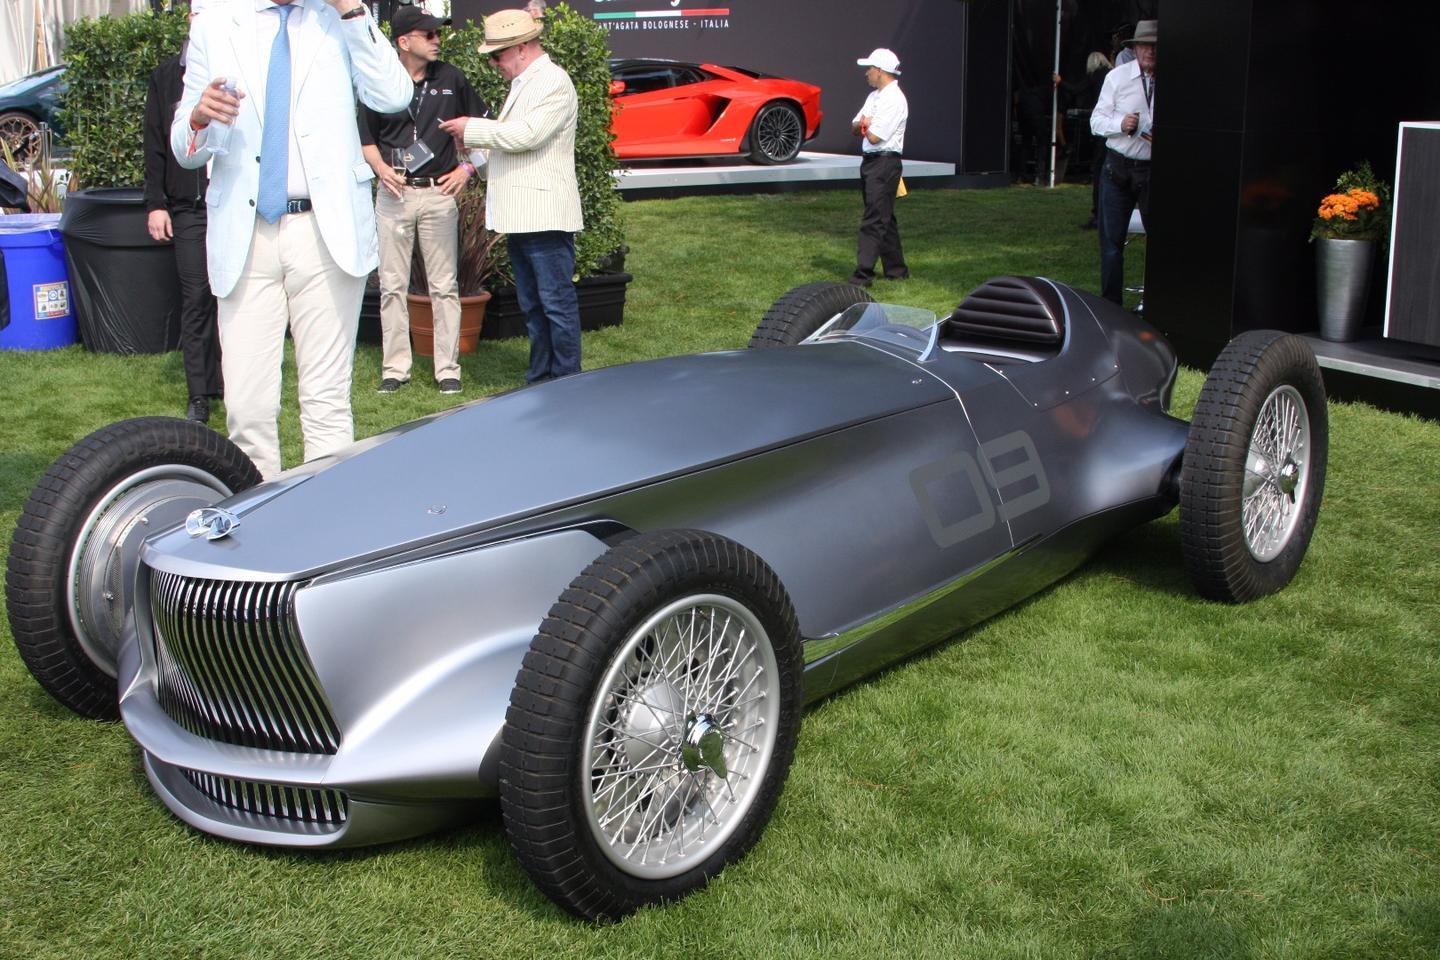 Infiniti shows the Prototype 9 at Pebble Beach Concours d'Elegance 2017